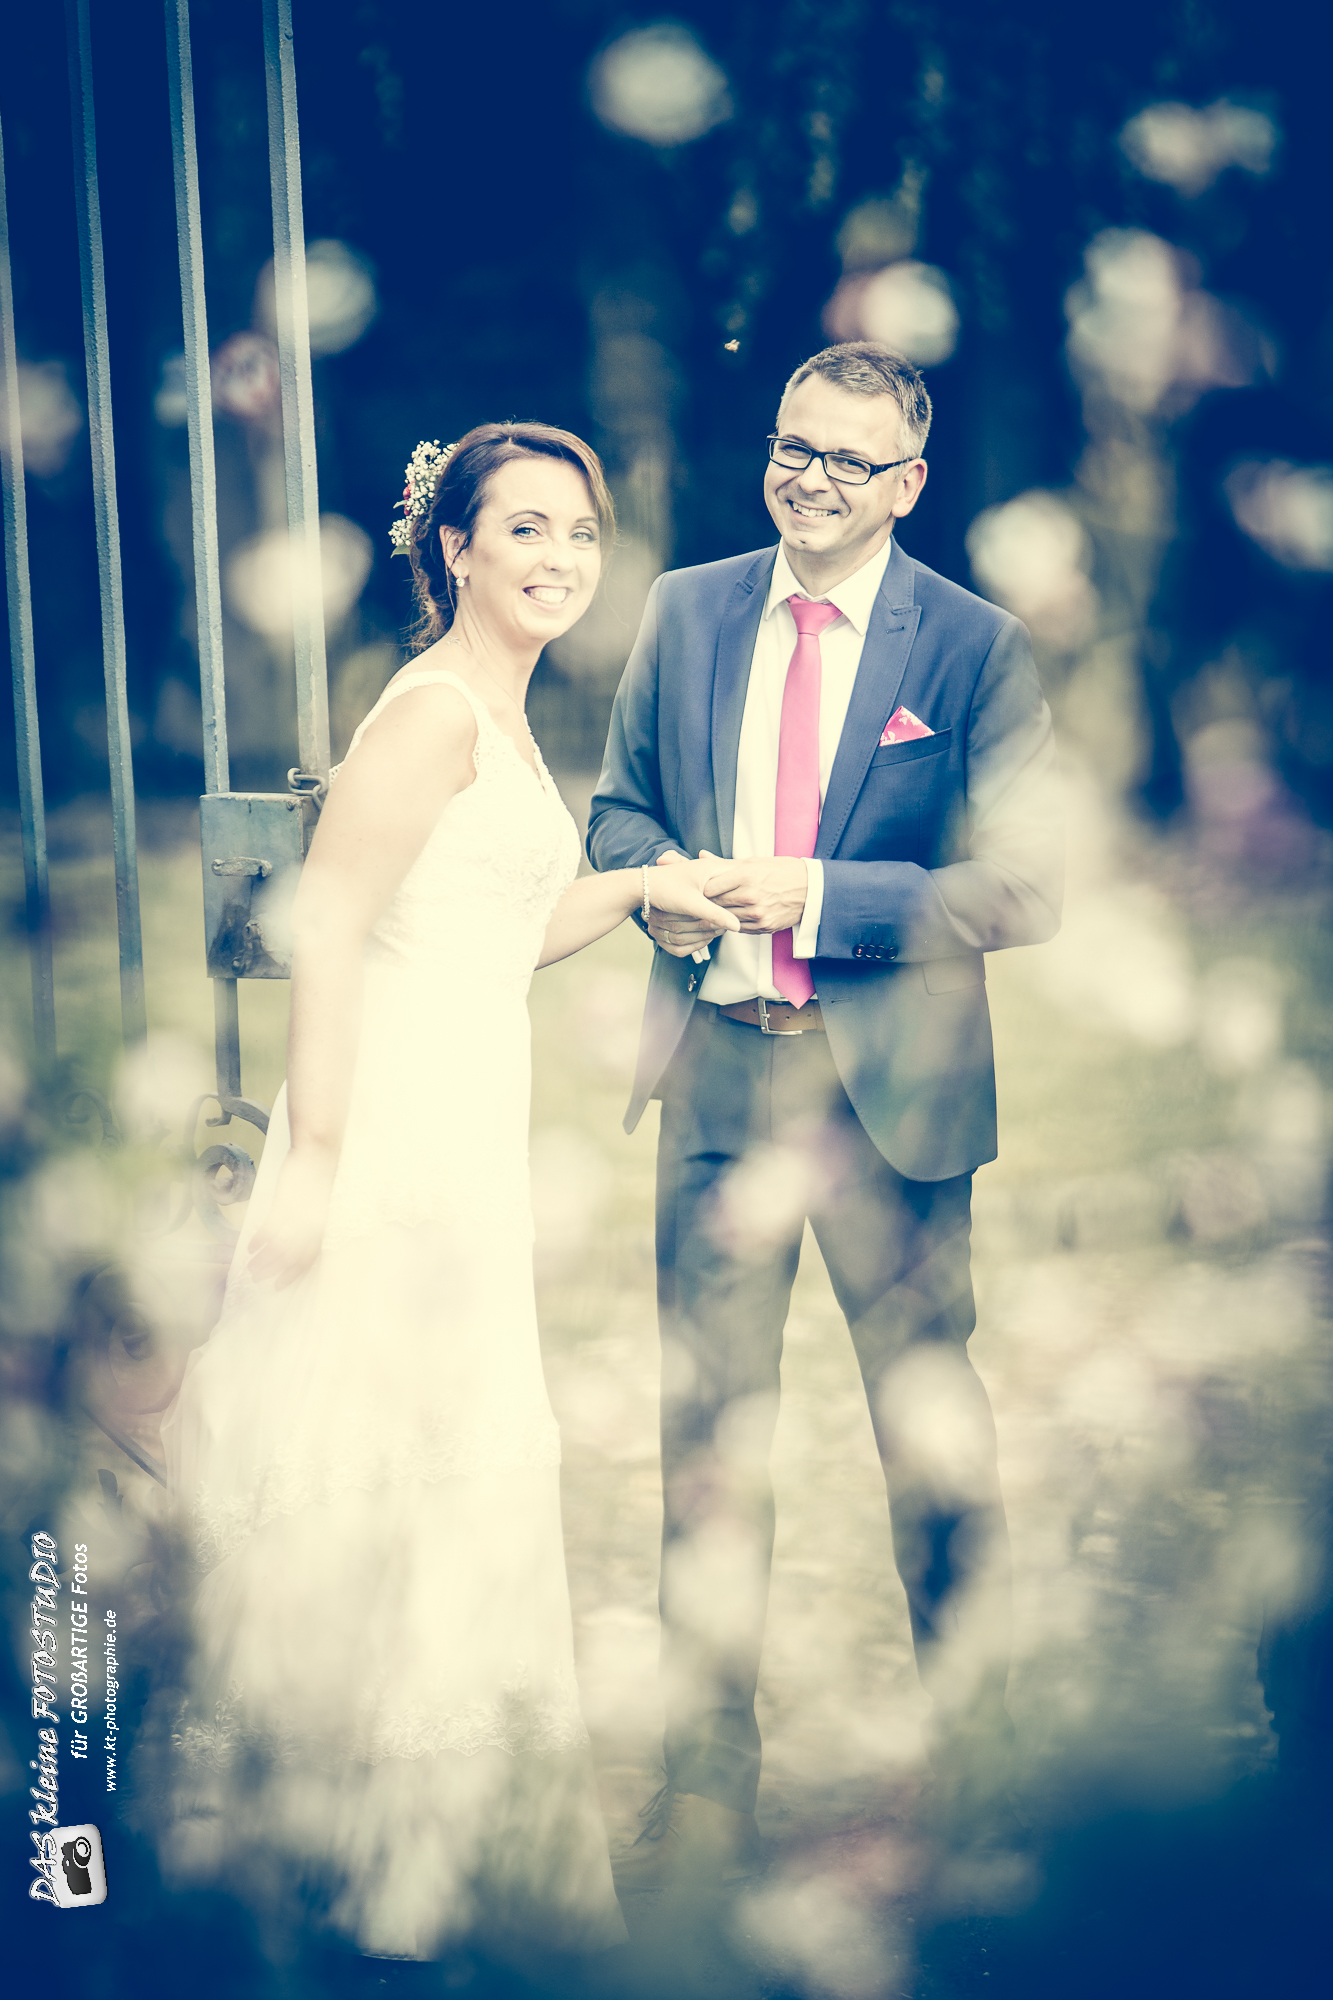 hemberger_wedding_01_-92